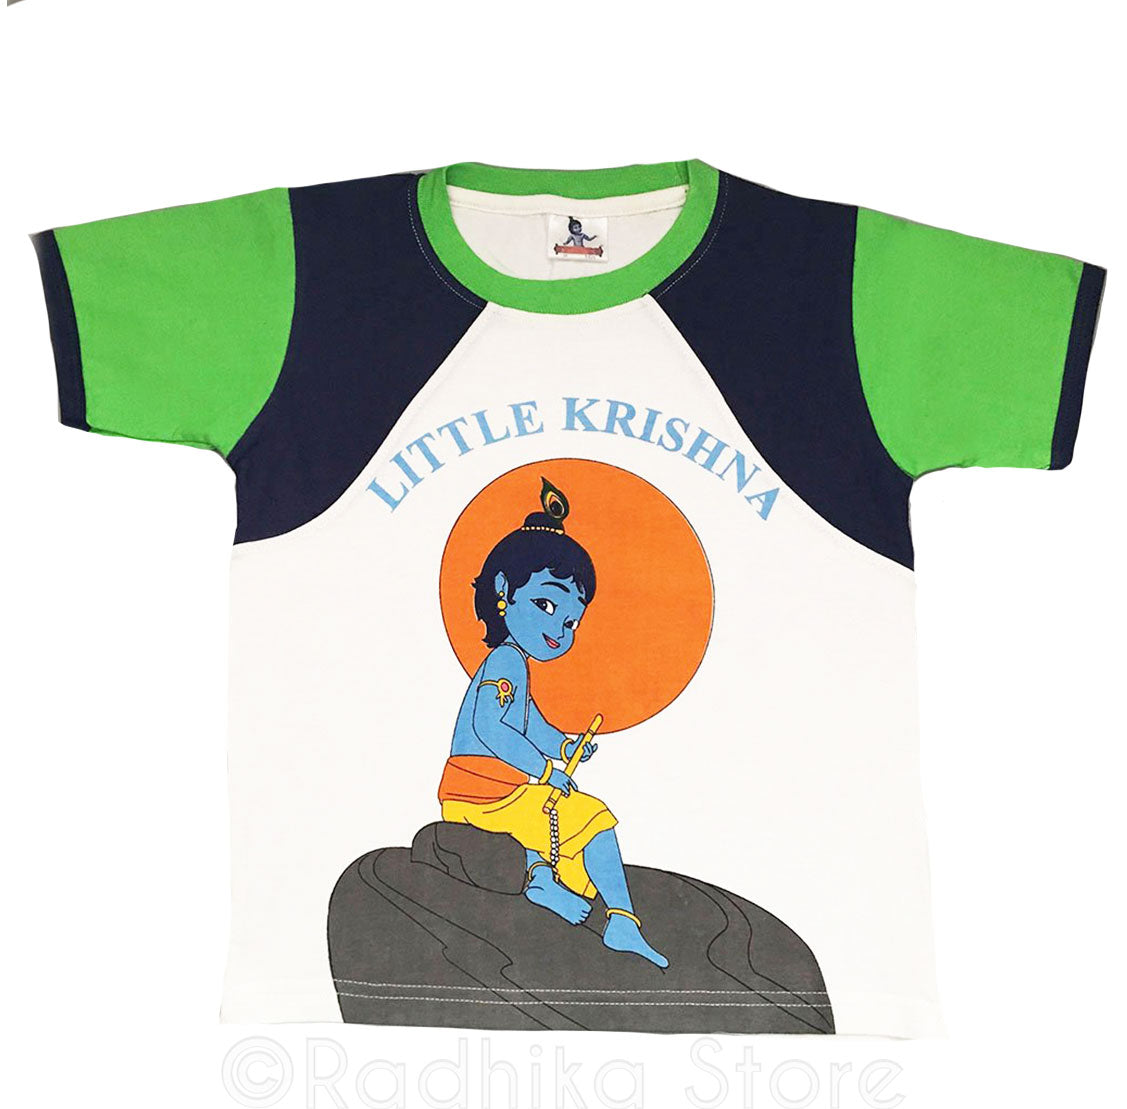 Little Krishna Sitting T-Shirt, Green/ Blue- Size- 7 to 8 Years Old